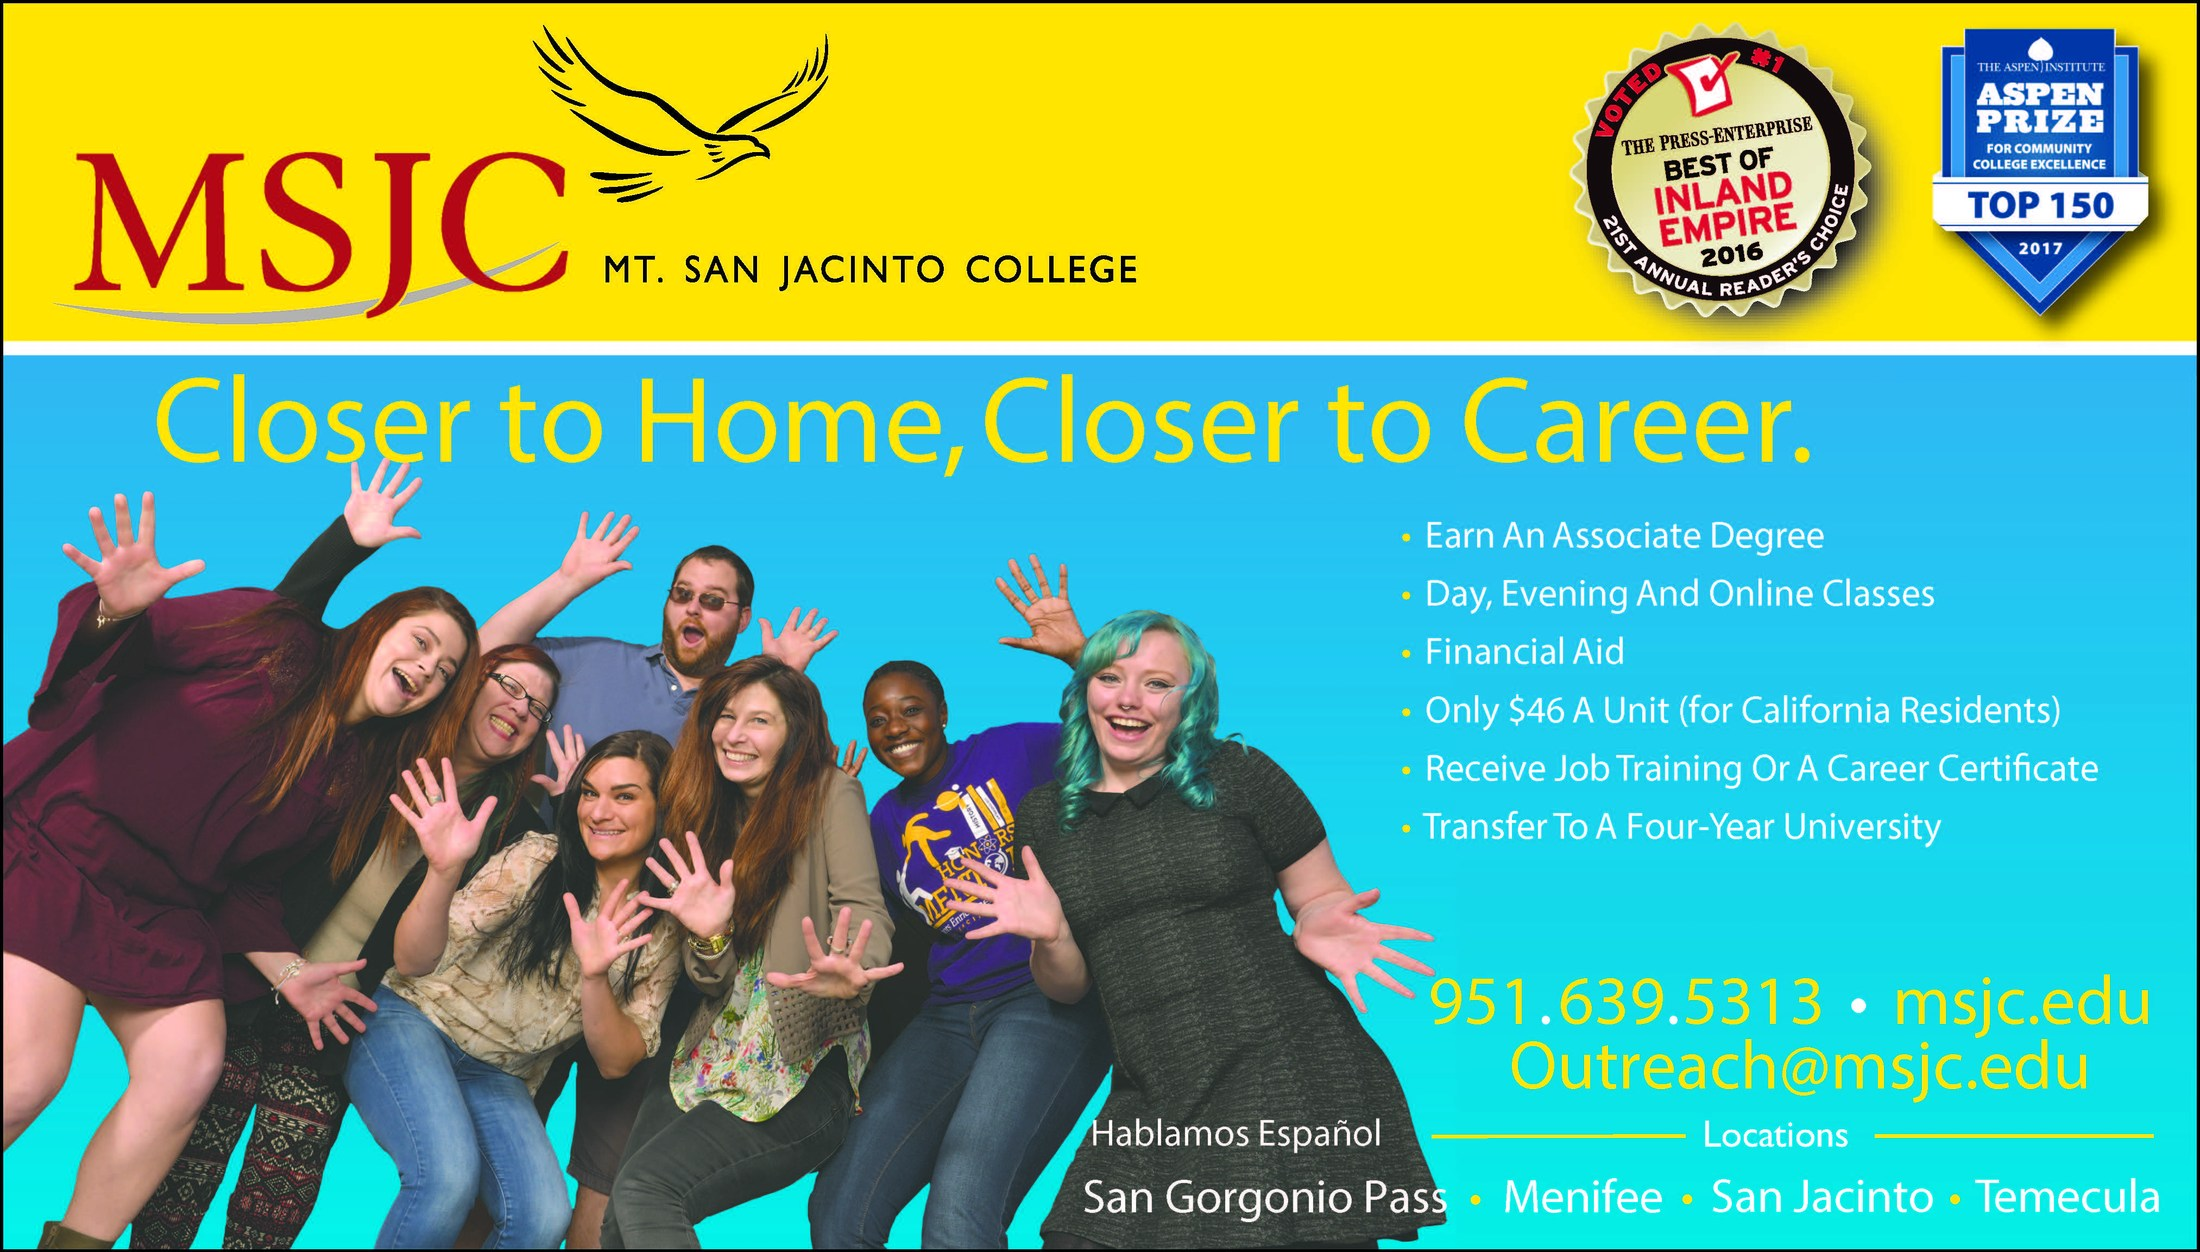 Mt. San Jacinto College flyer